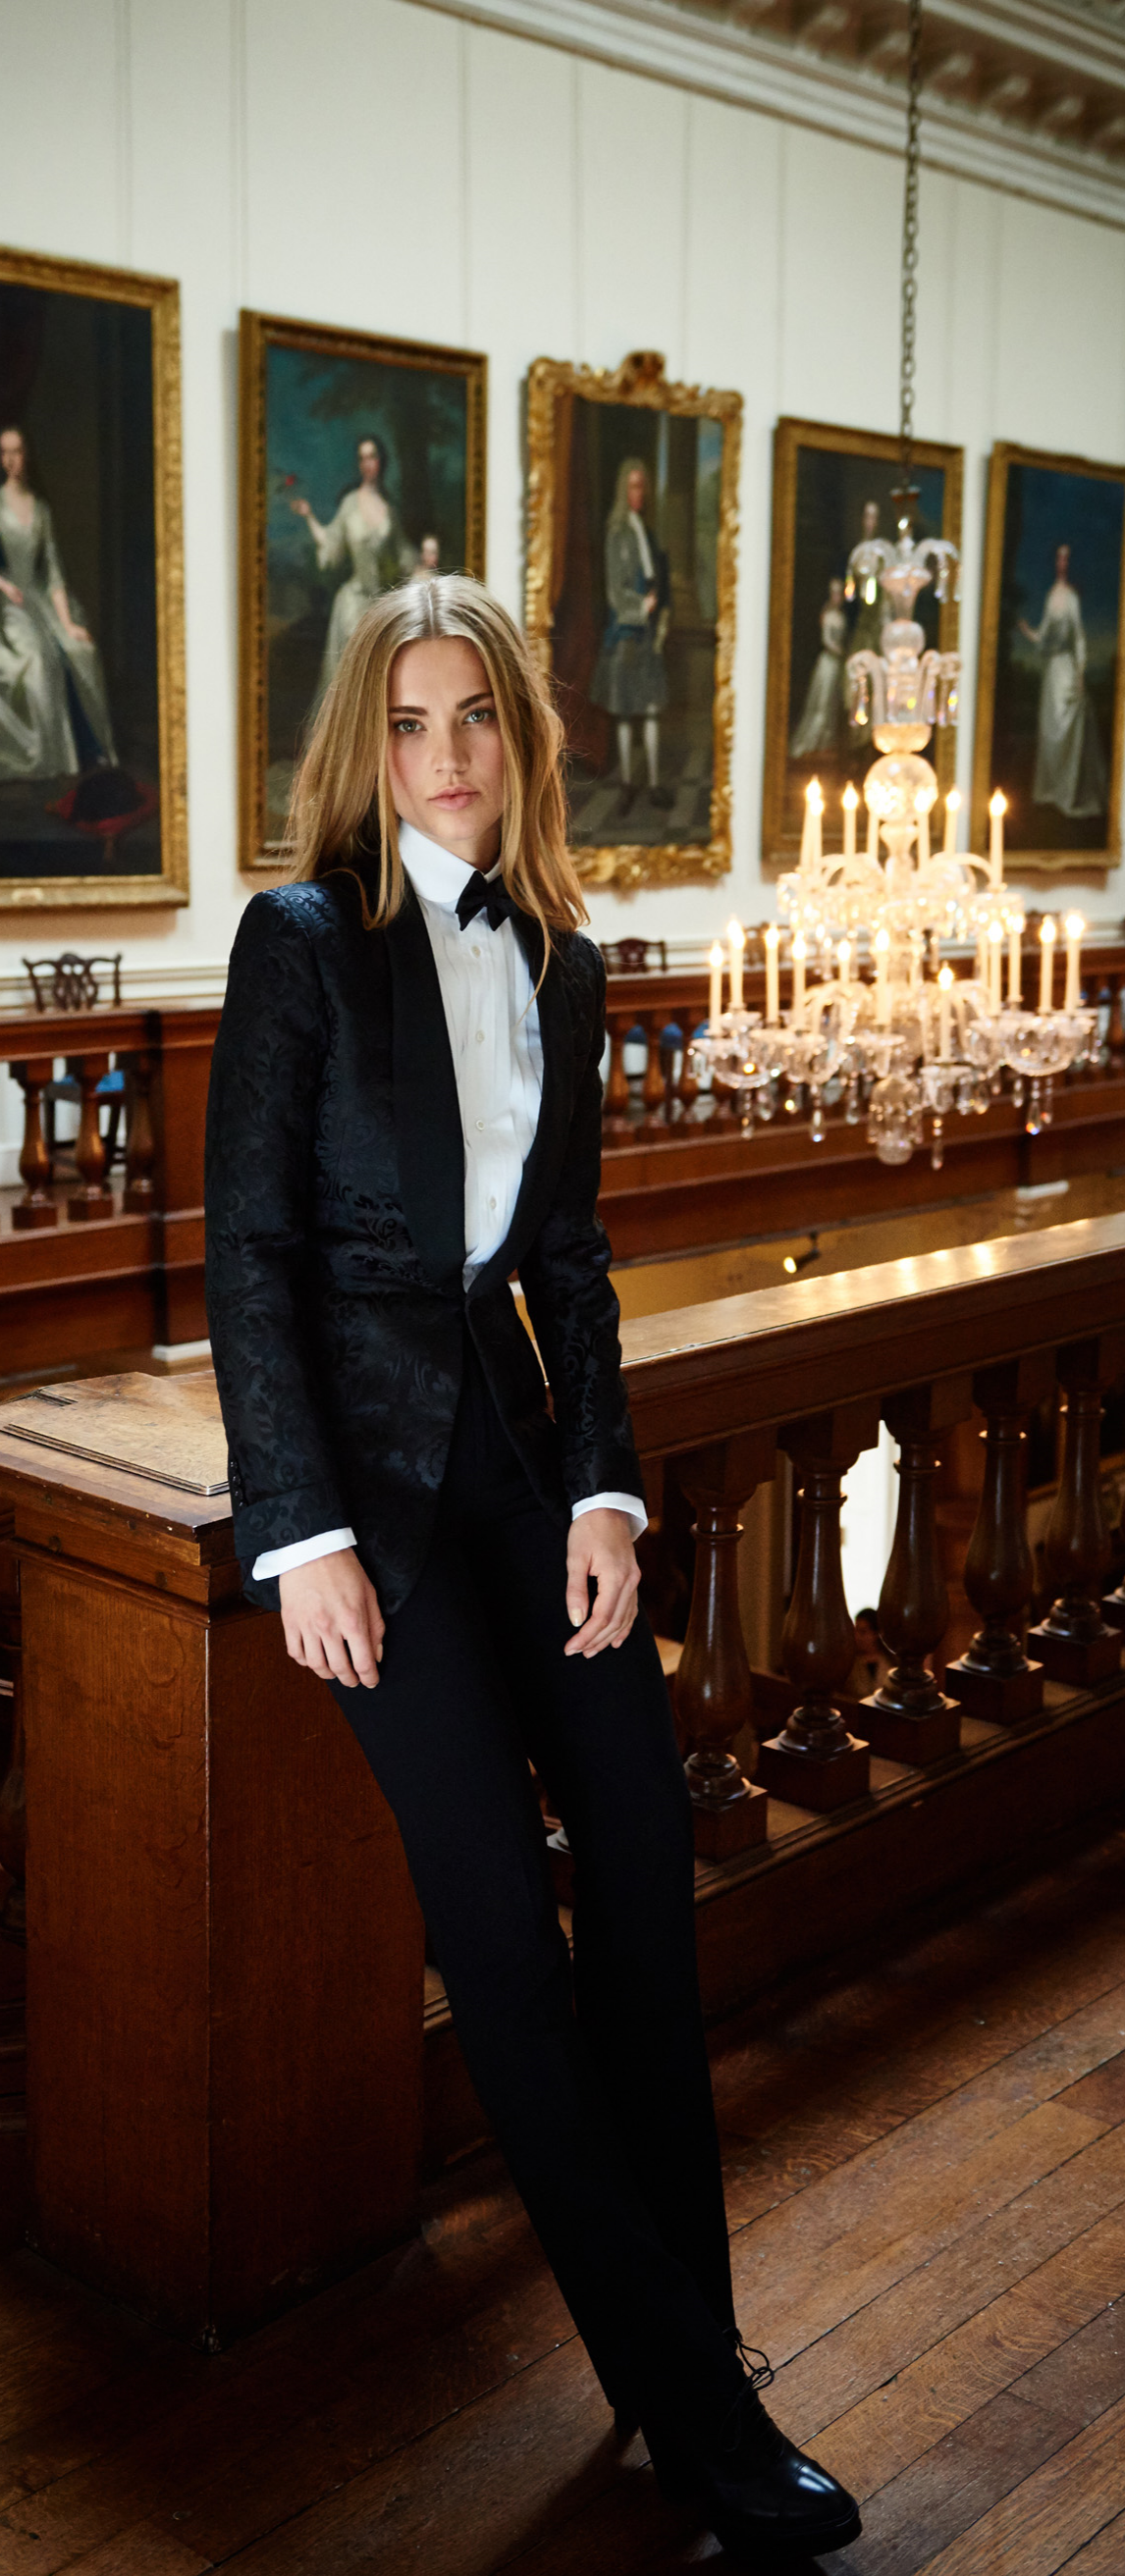 56231b3052 The evening tuxedo reimagined for the modern woman